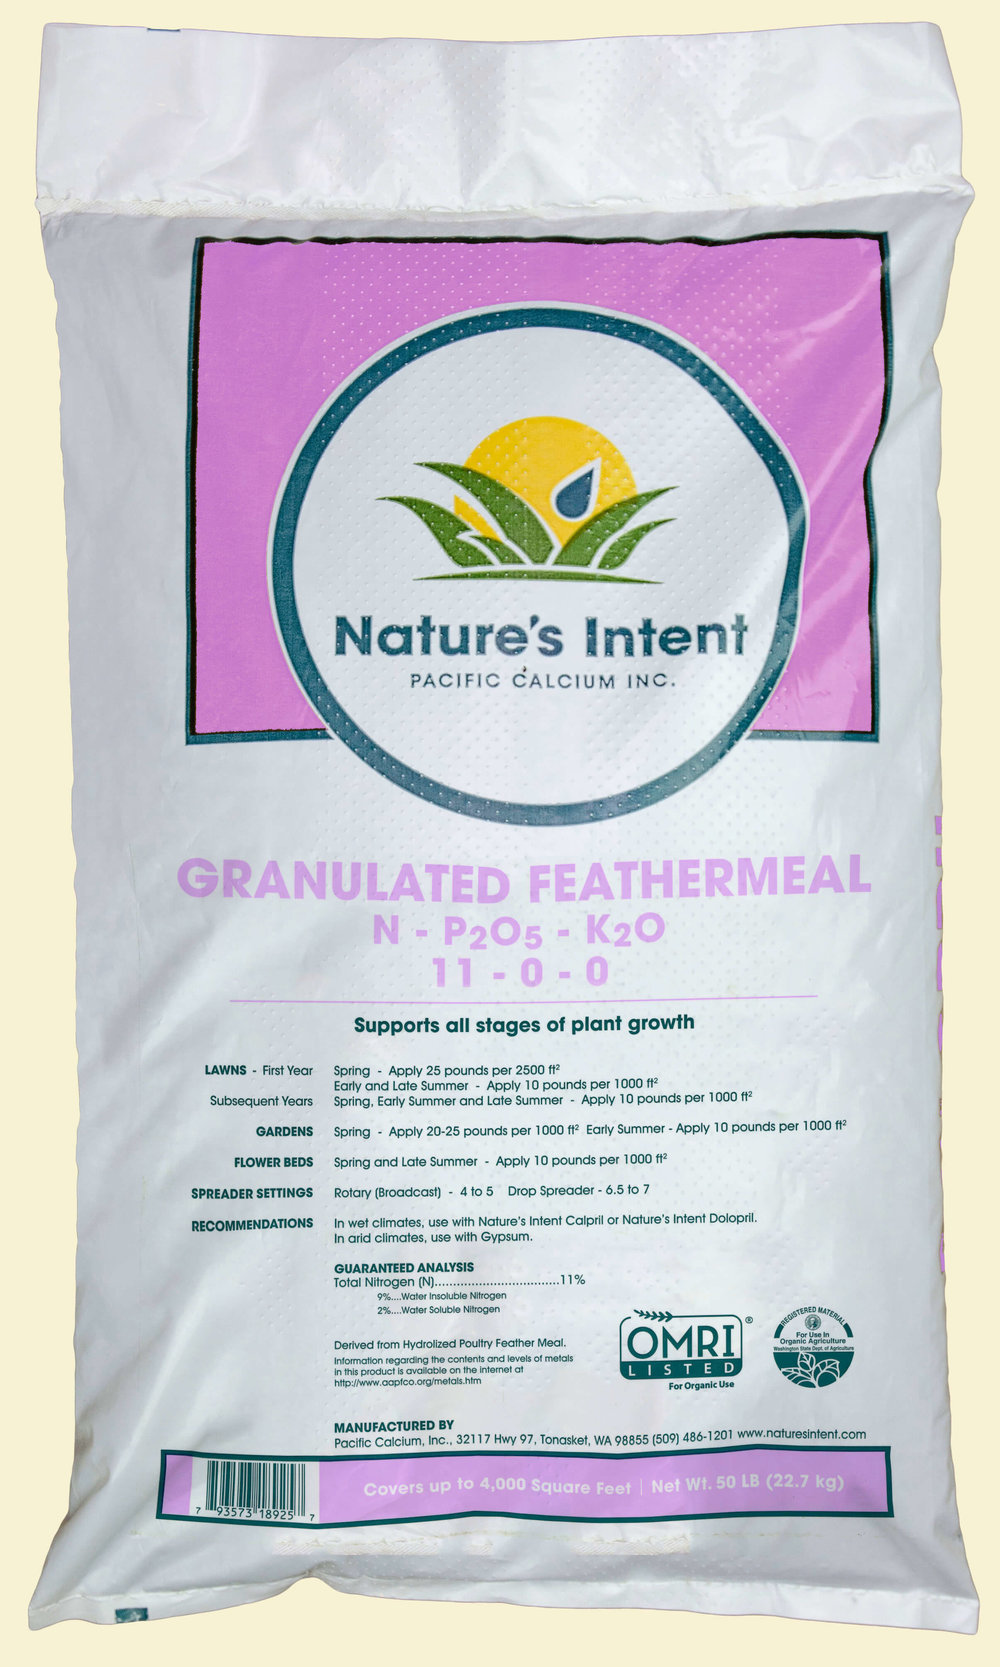 natures_intent-granulated-feathermeal.jpg